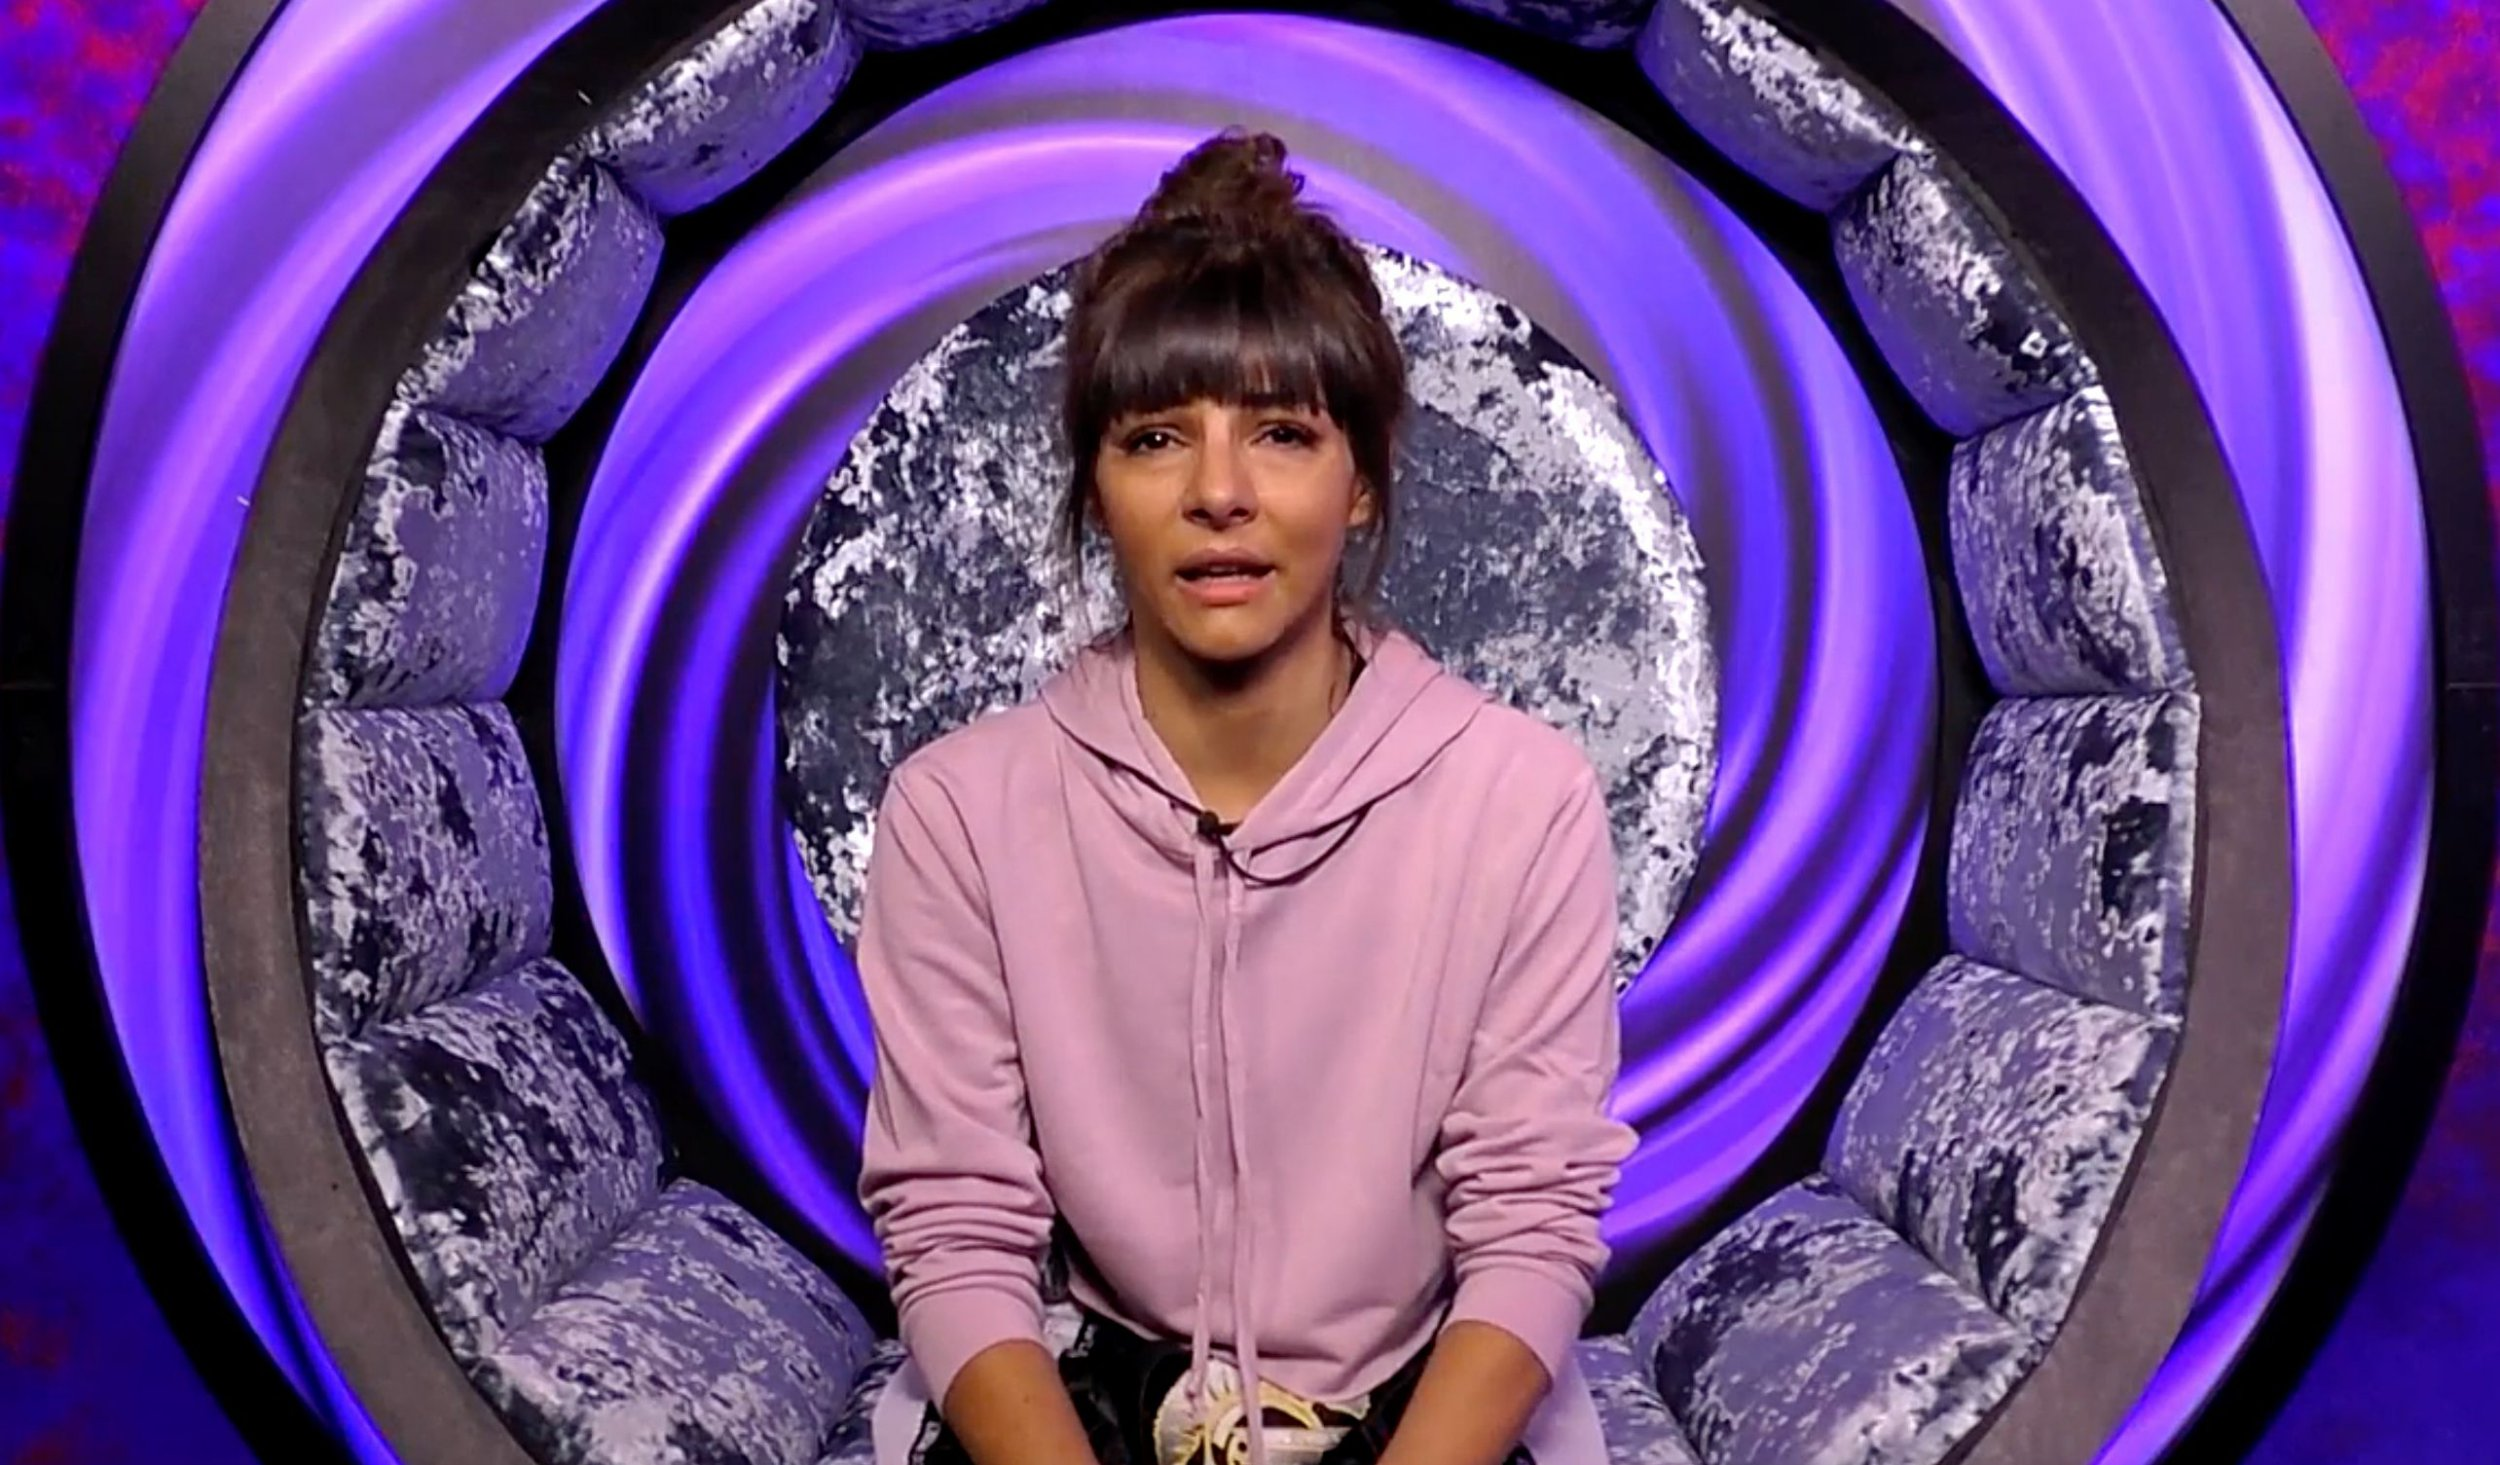 Editorial Use Only Mandatory Credit: Photo by REX/Shutterstock (9826810az) Roxanne Pallett cries in the diary room 'Celebrity Big Brother' TV show, Series 22, Elstree Studios, Hertfordshire, UK - 30 Aug 2018